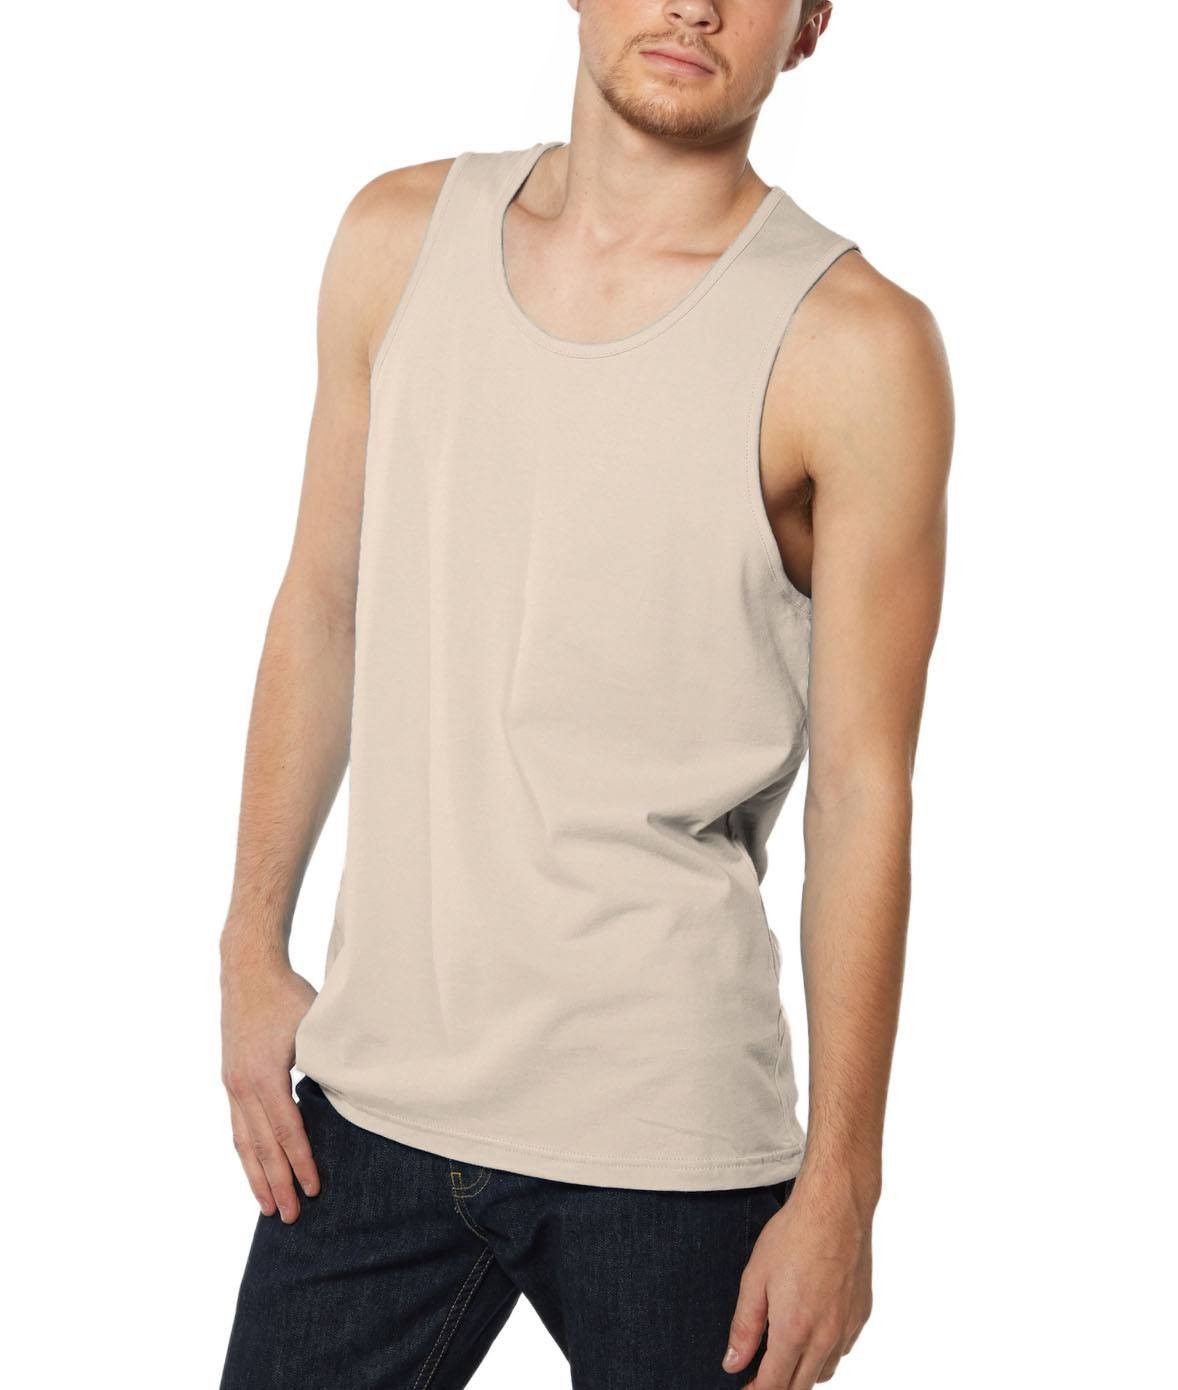 Ridiculously Soft Tank Top